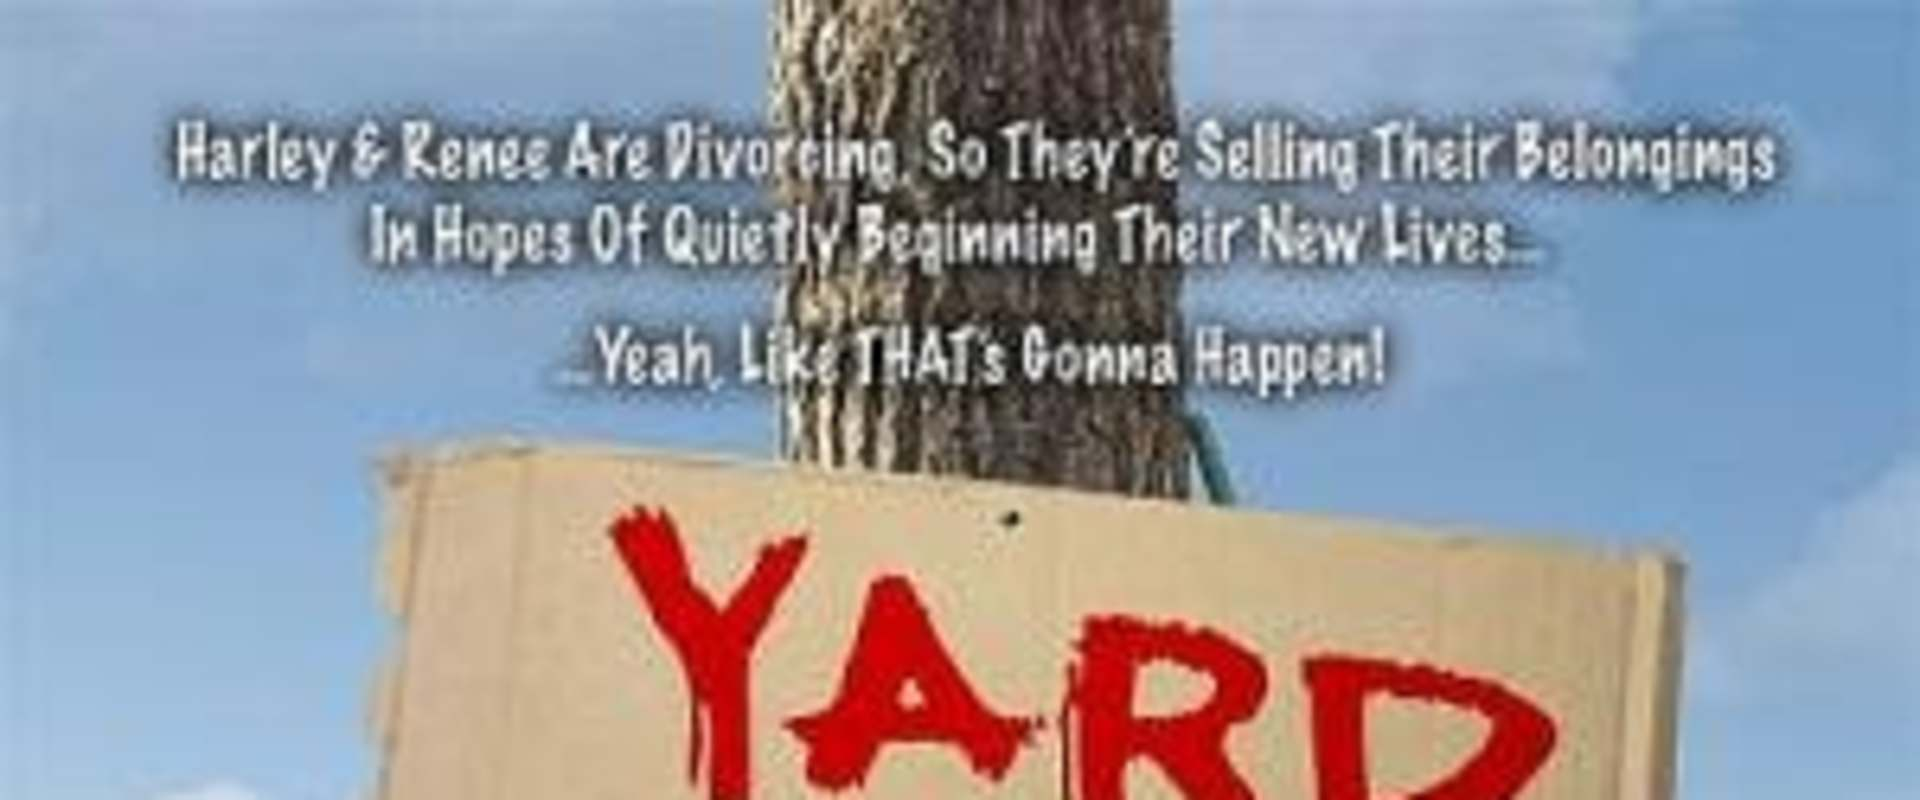 Yard Sale background 1